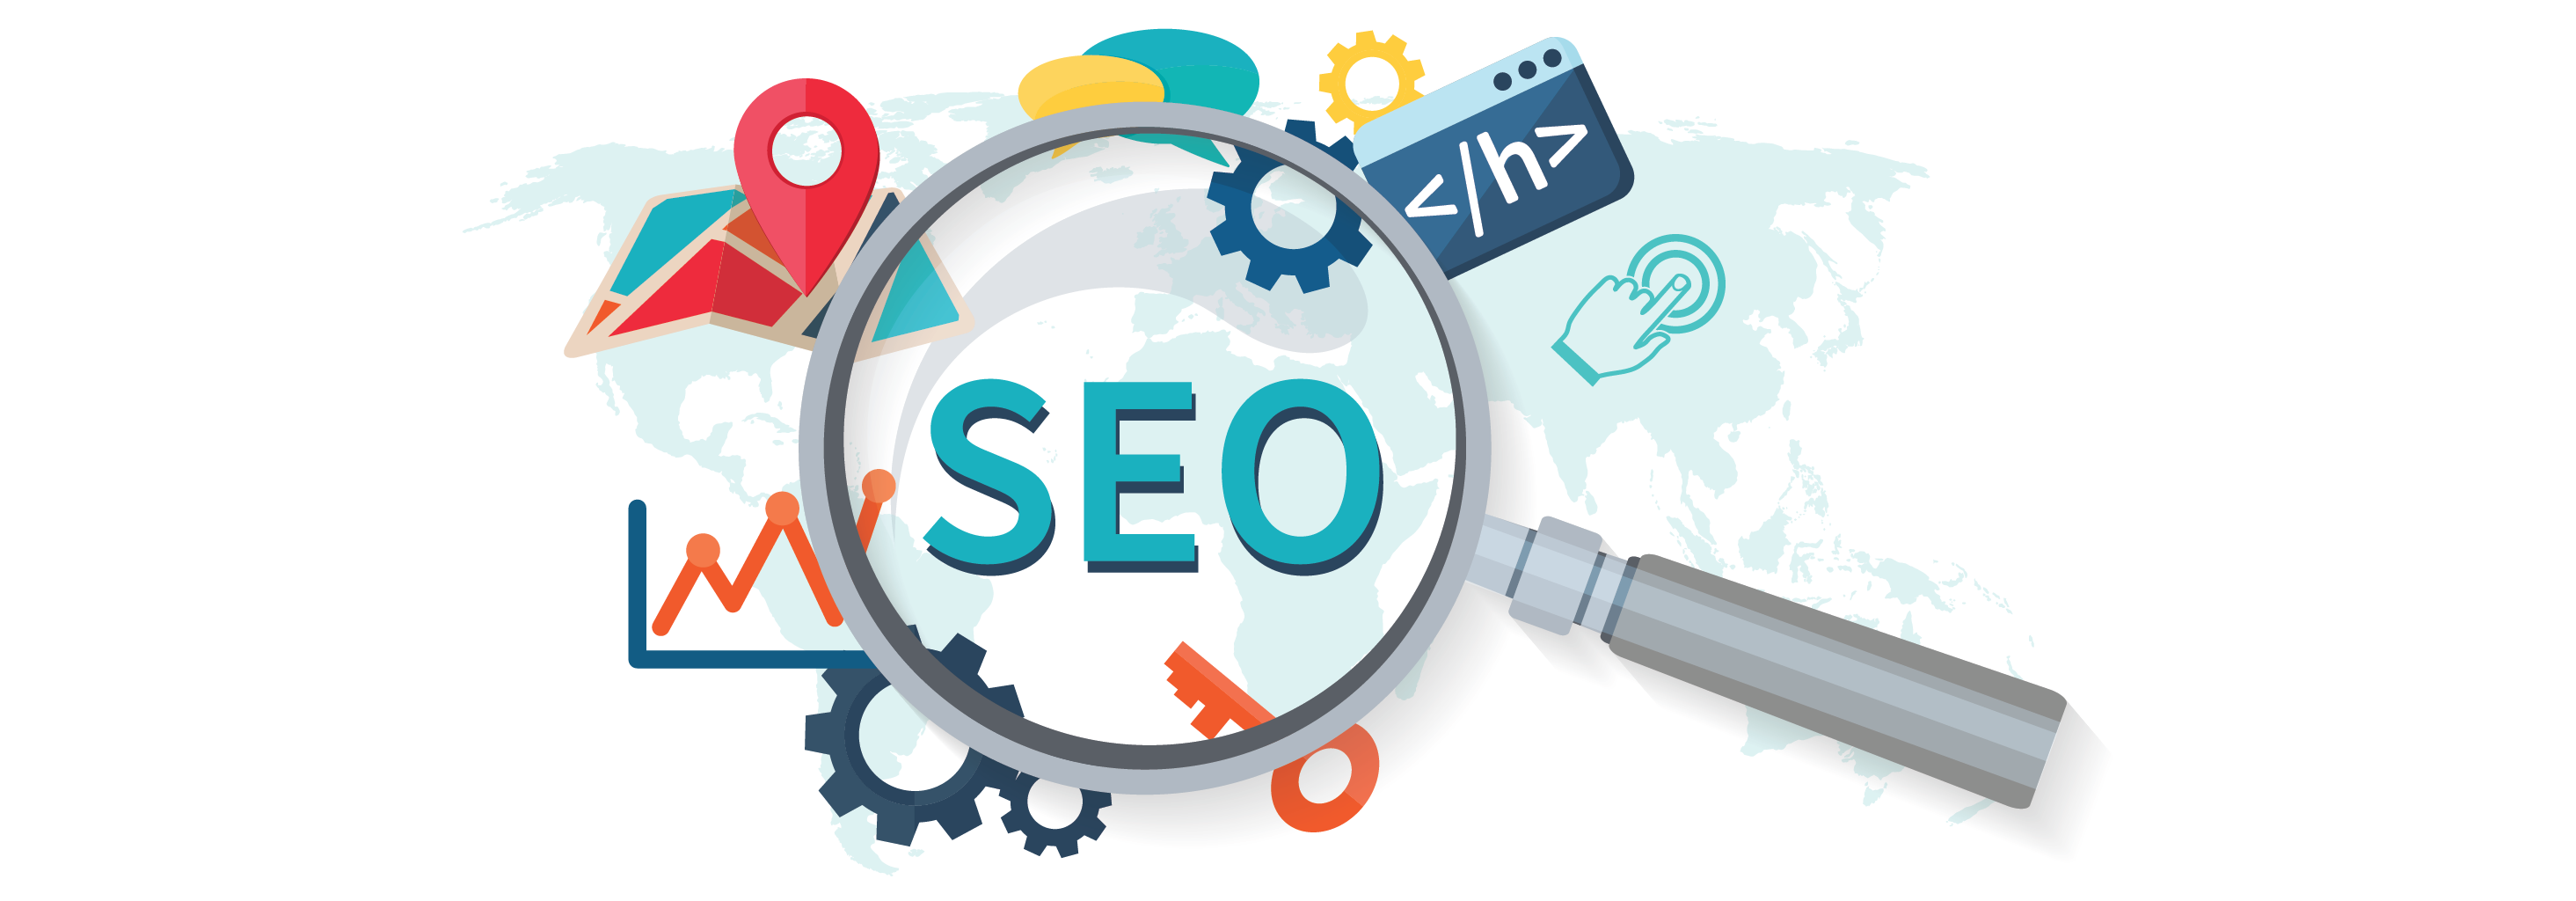 SEO Optimized & Google Friendly